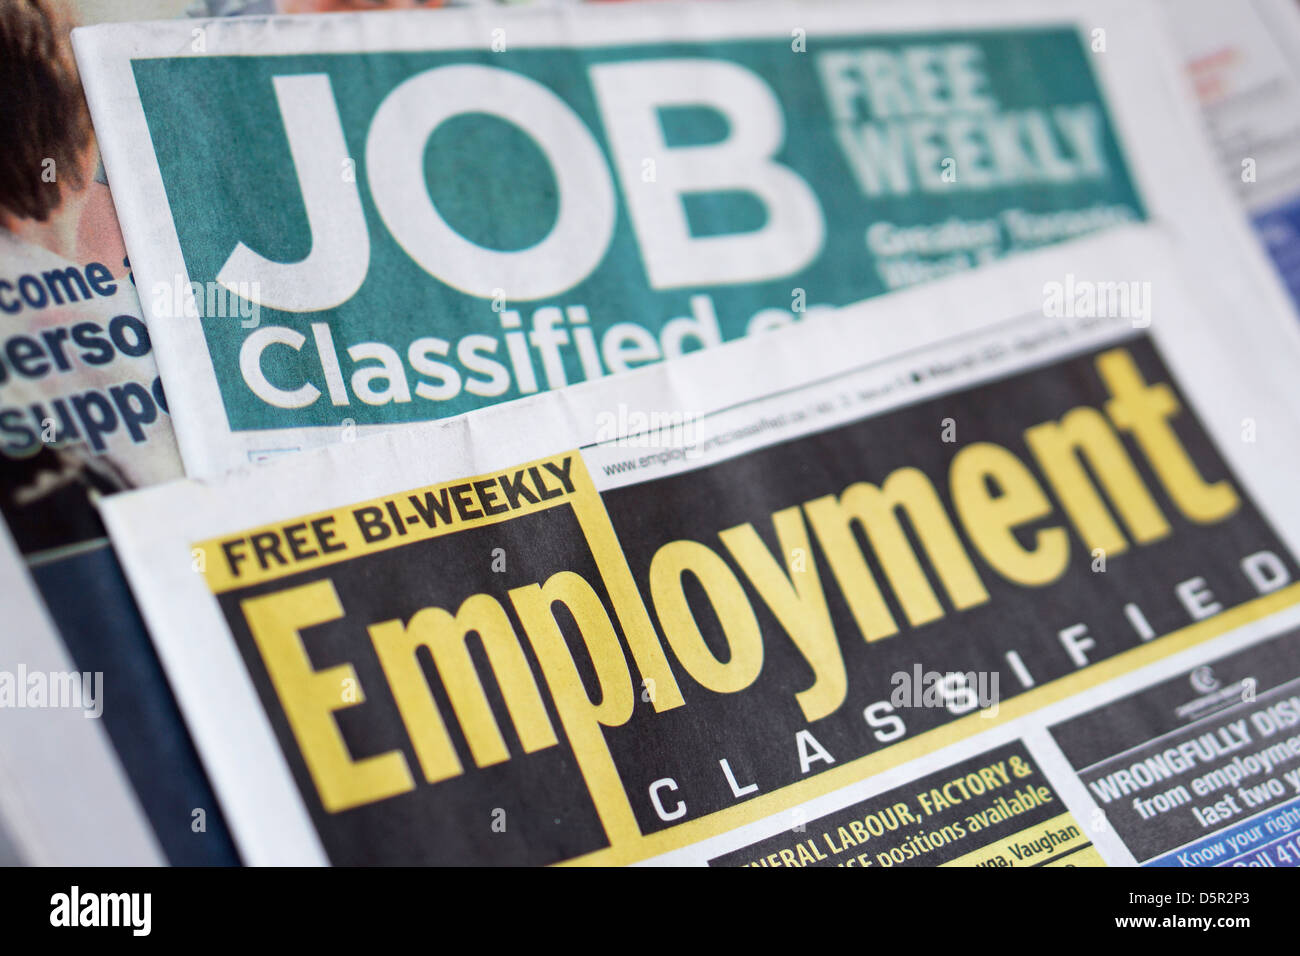 Jobs Employment Classifieds Newspaper, Ontario, Canada Stock Photo